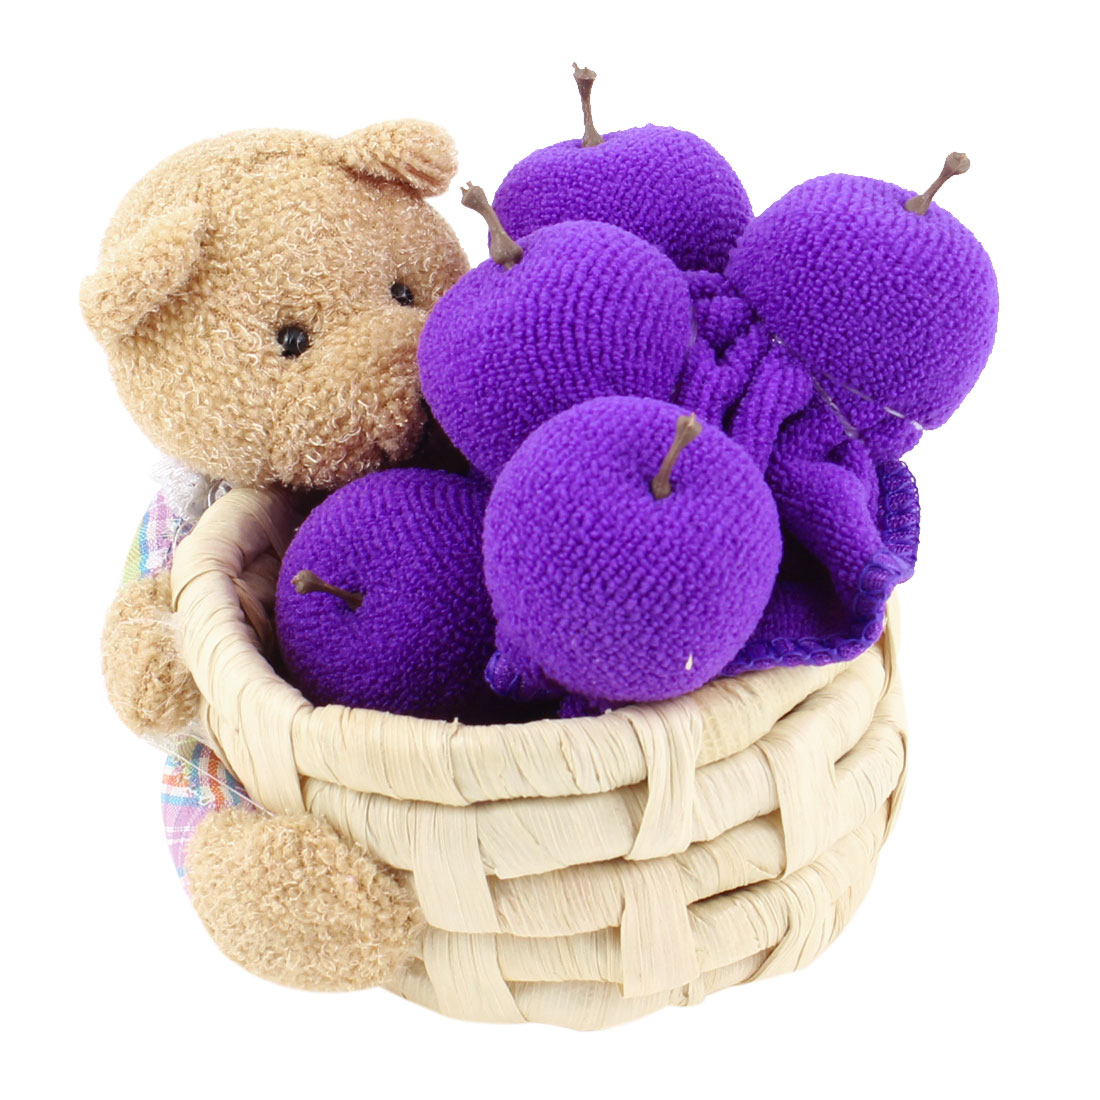 Purple Blueberry Design Wedding Party Gift Novelty Towel w Bear Basket